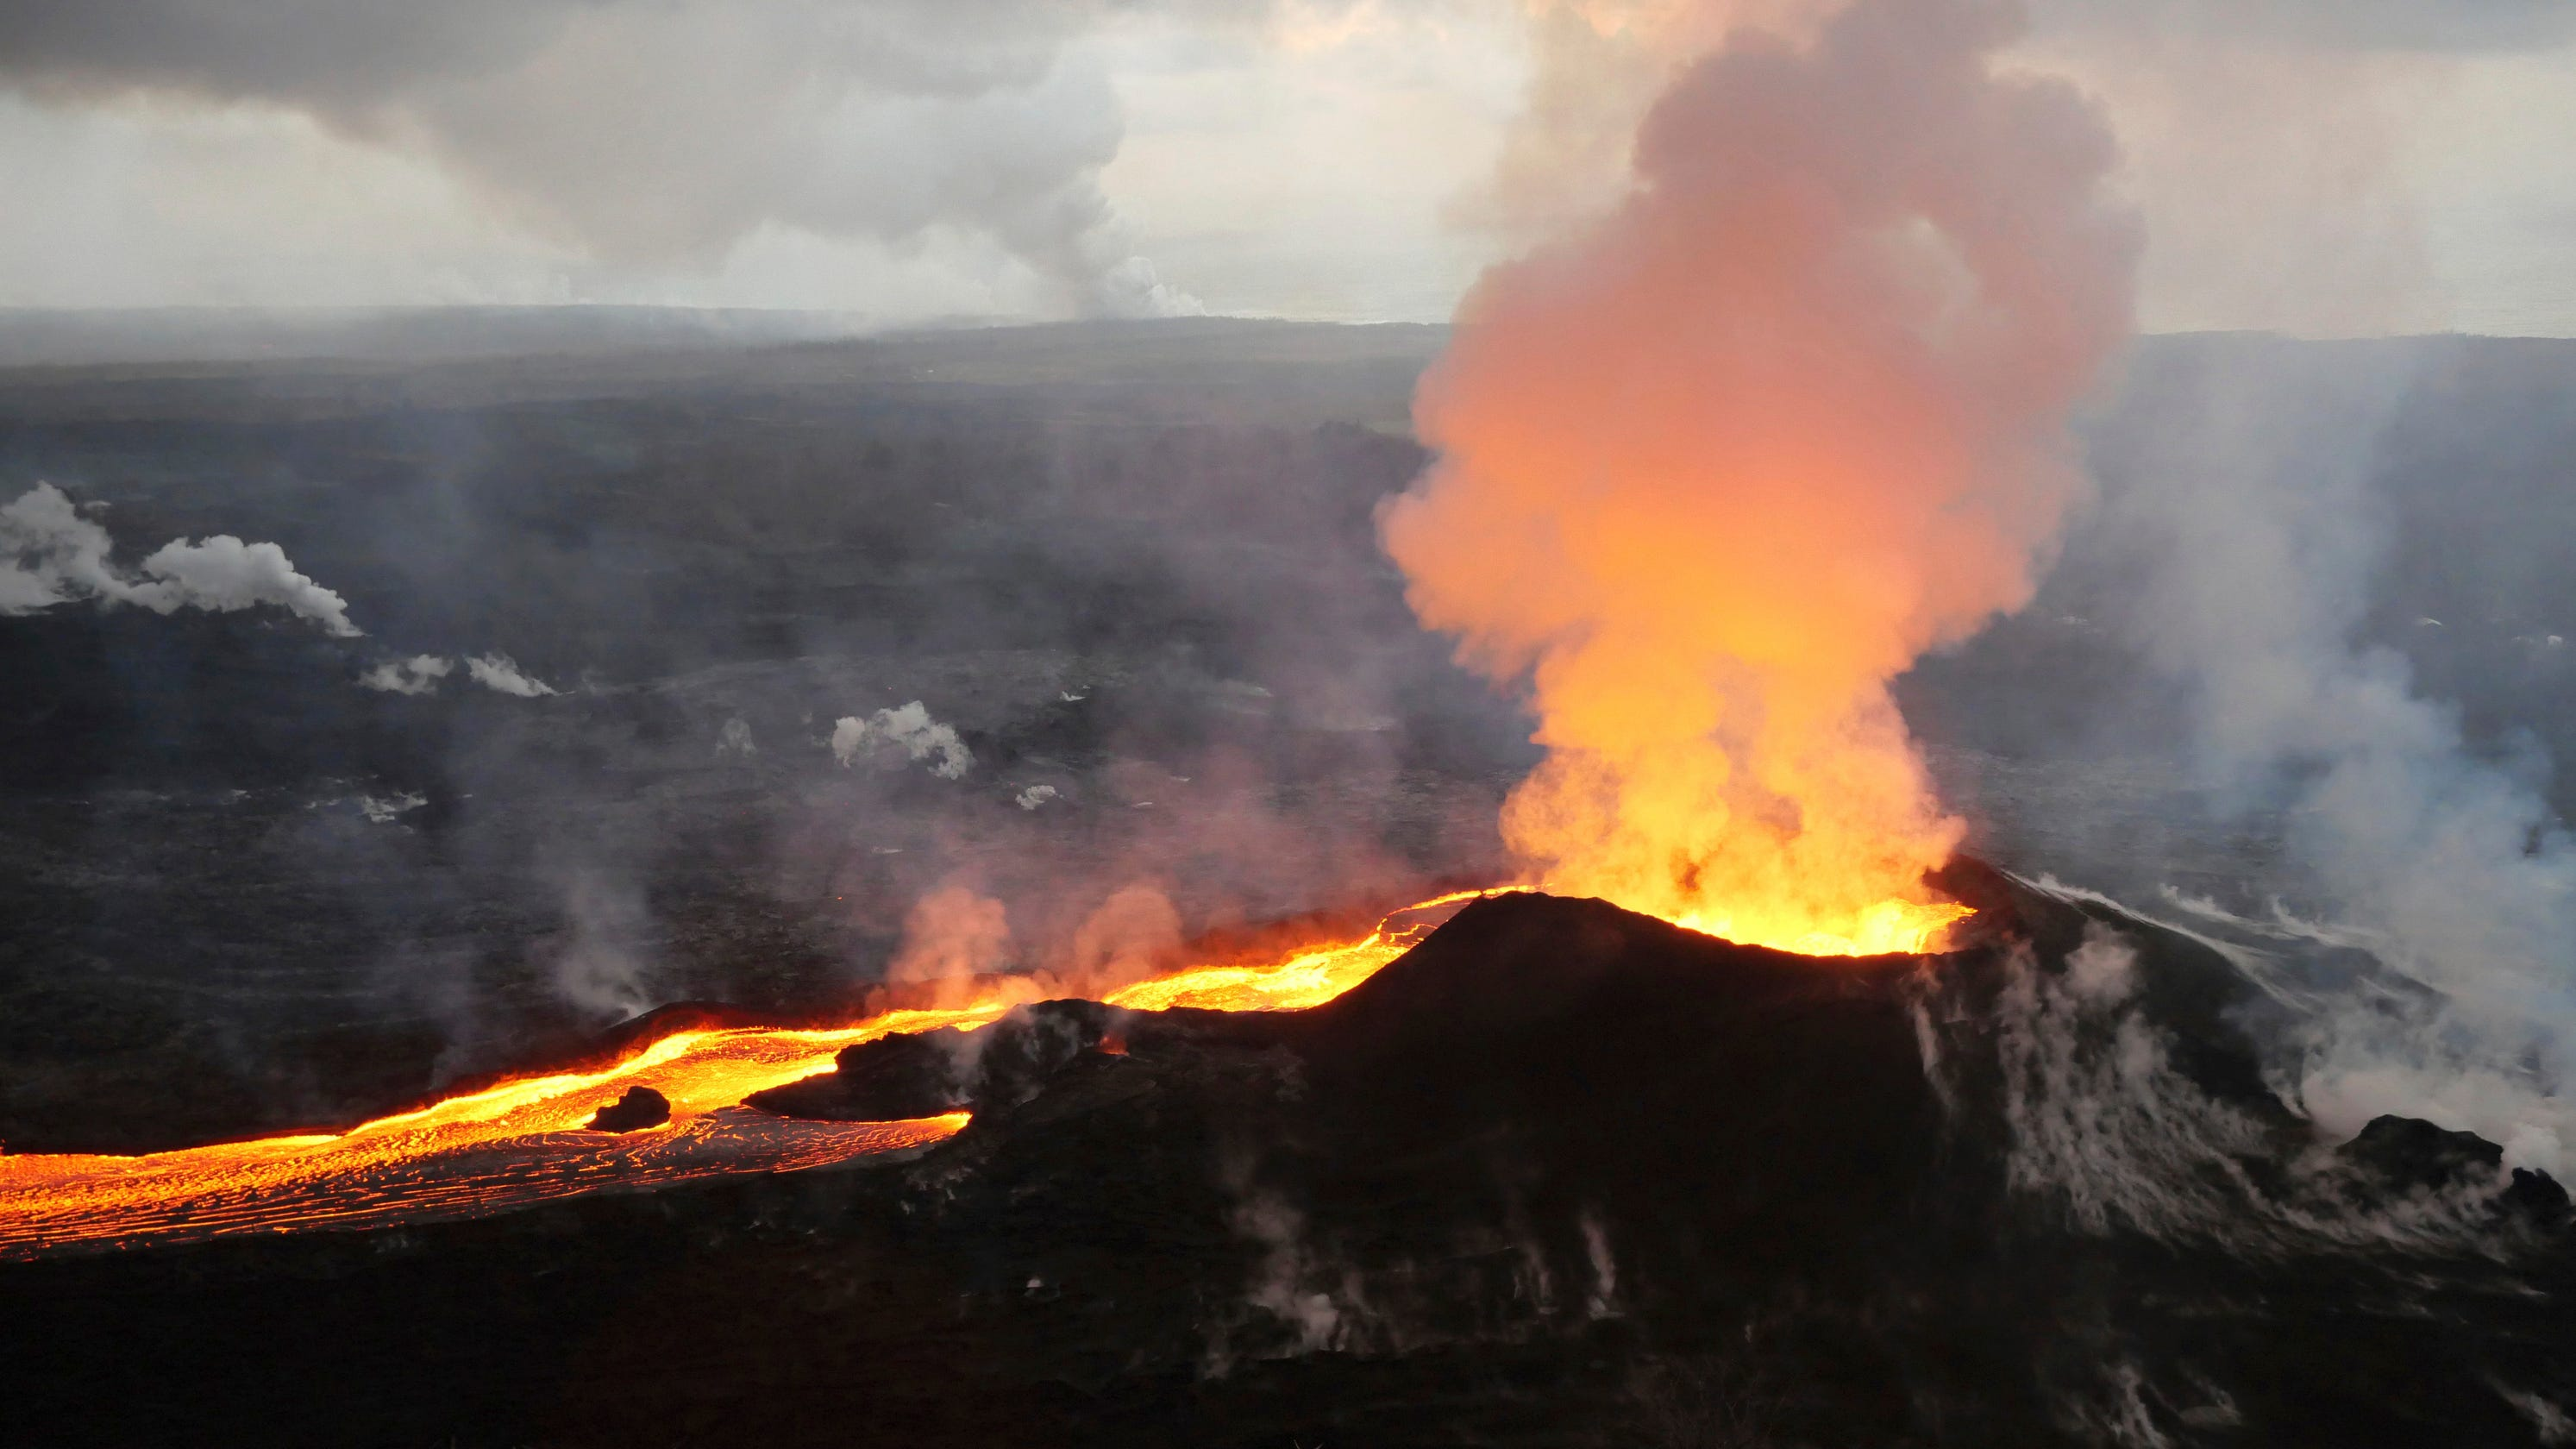 Volcanoes: 18 US volcanoes a high threat, Kilauea most ...